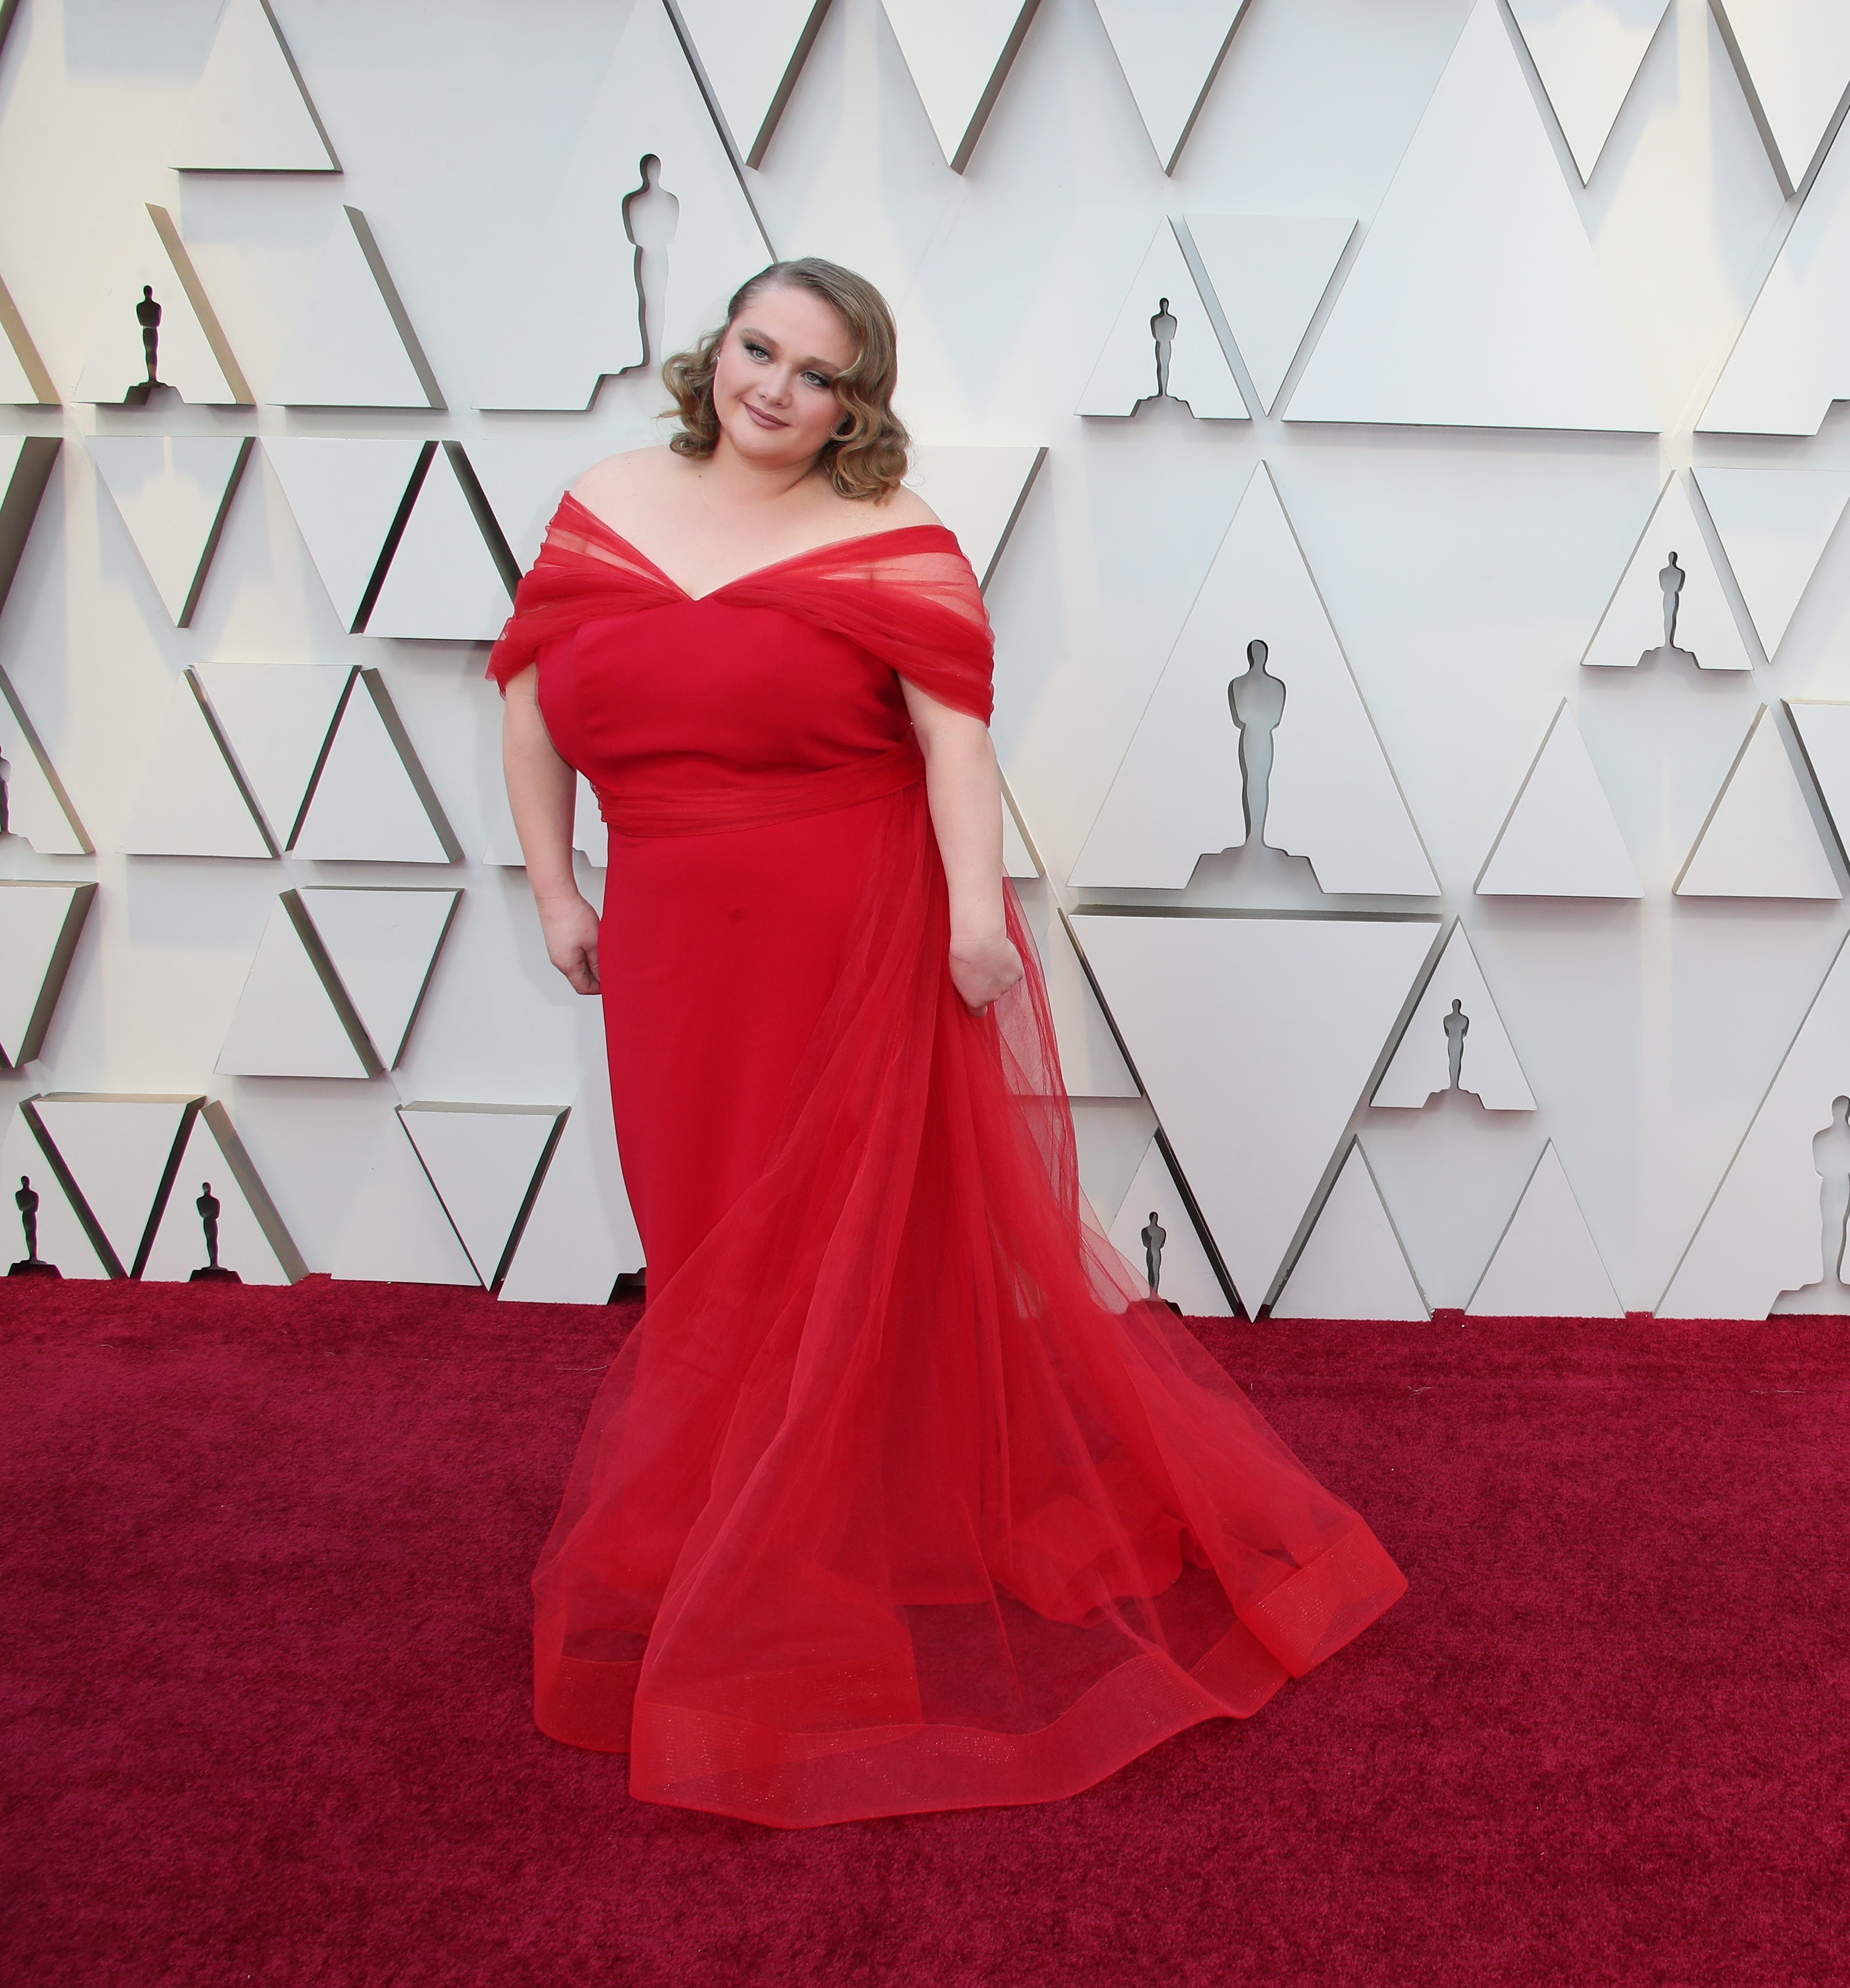 February 24, 2019; Los Angeles, CA, USA; Danielle Macdonald arrives at the 91st Academy Awards at the Dolby Theatre. Mandatory Credit: Dan MacMedan-USA TODAY NETWORK (Via OlyDrop)